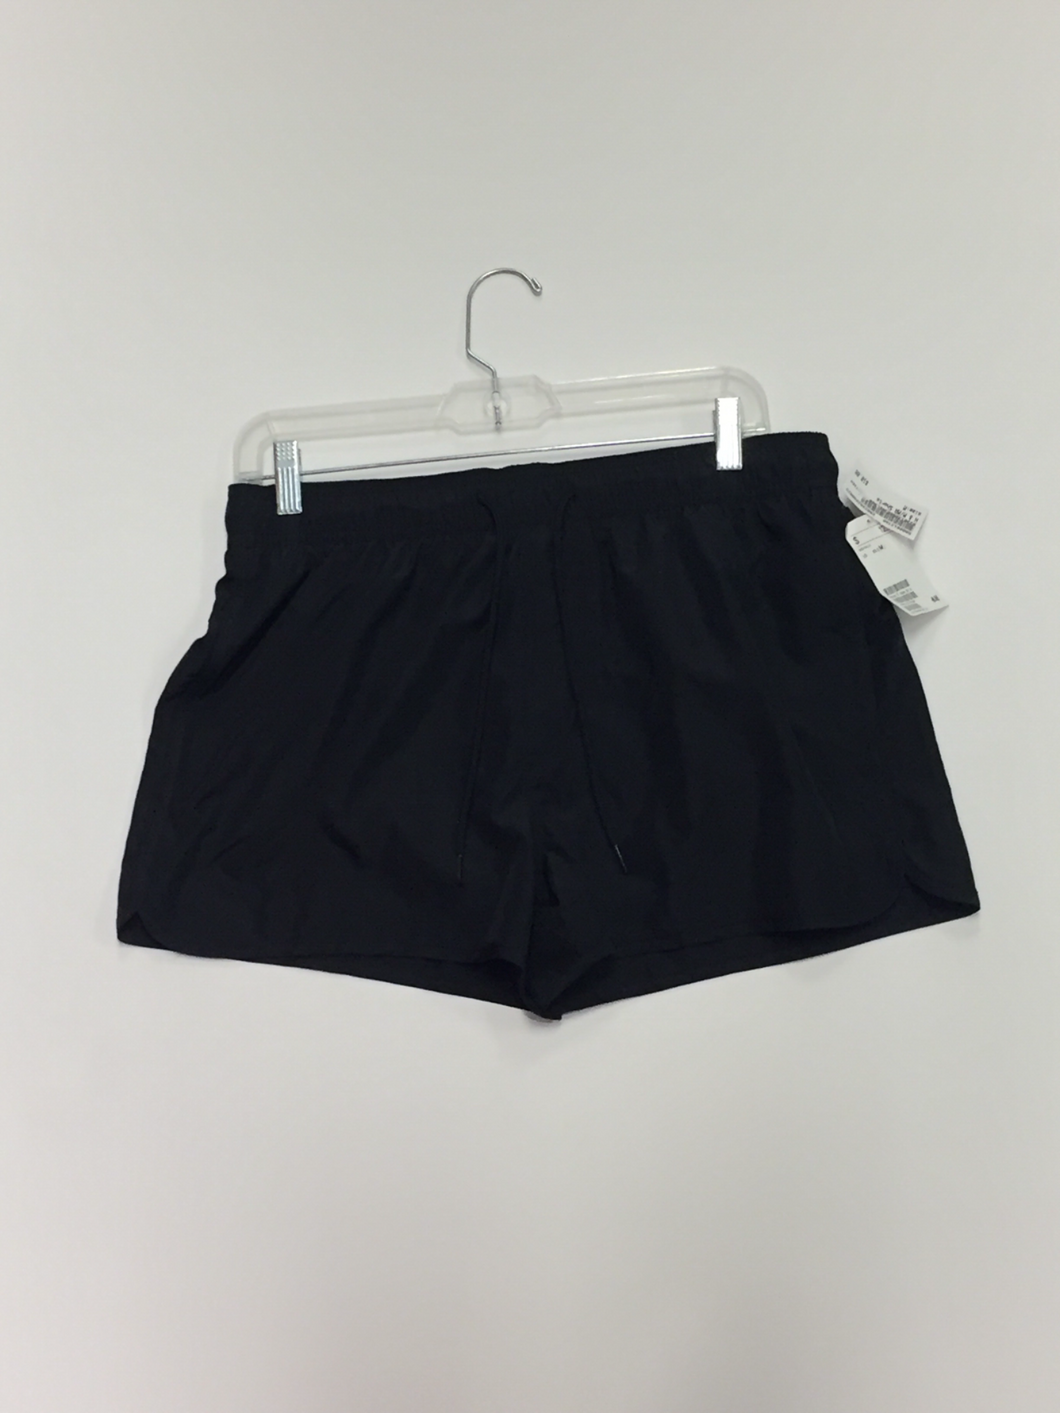 H & M Athletic Shorts Size Medium